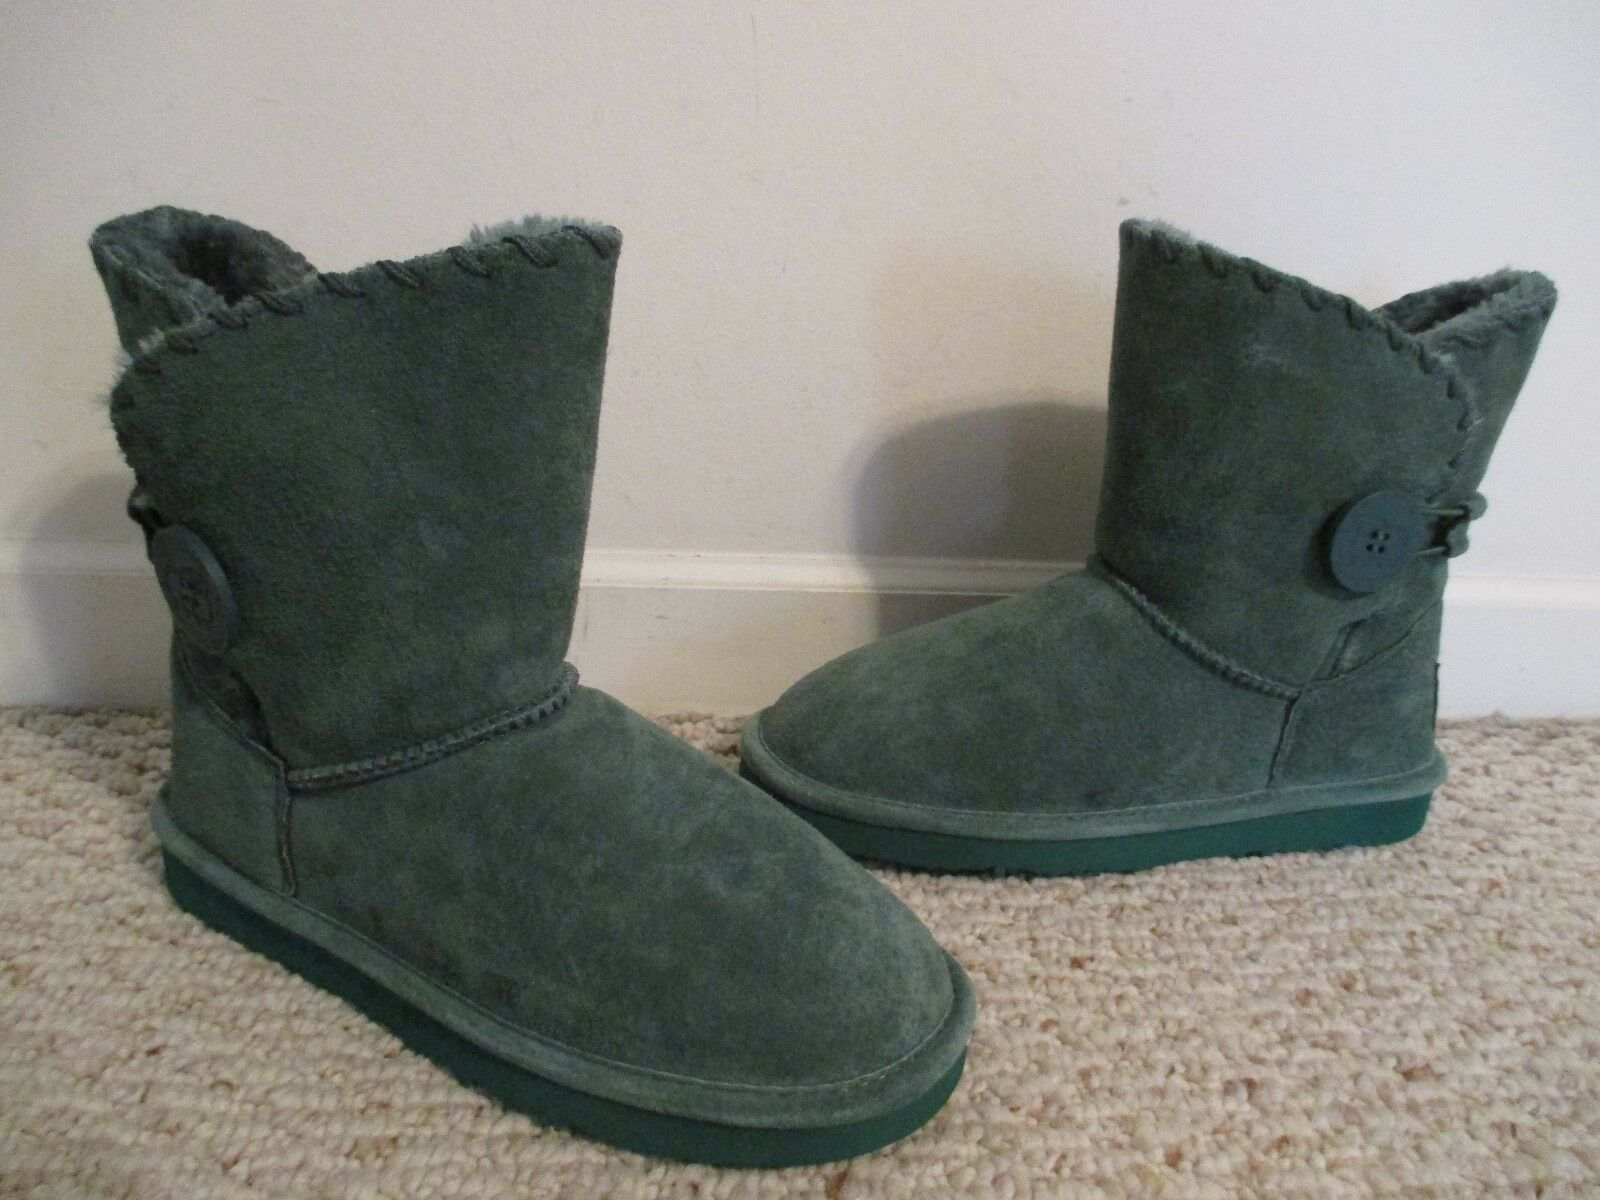 NEW Lamo boots green suede leather button Size 7 faux fur lined